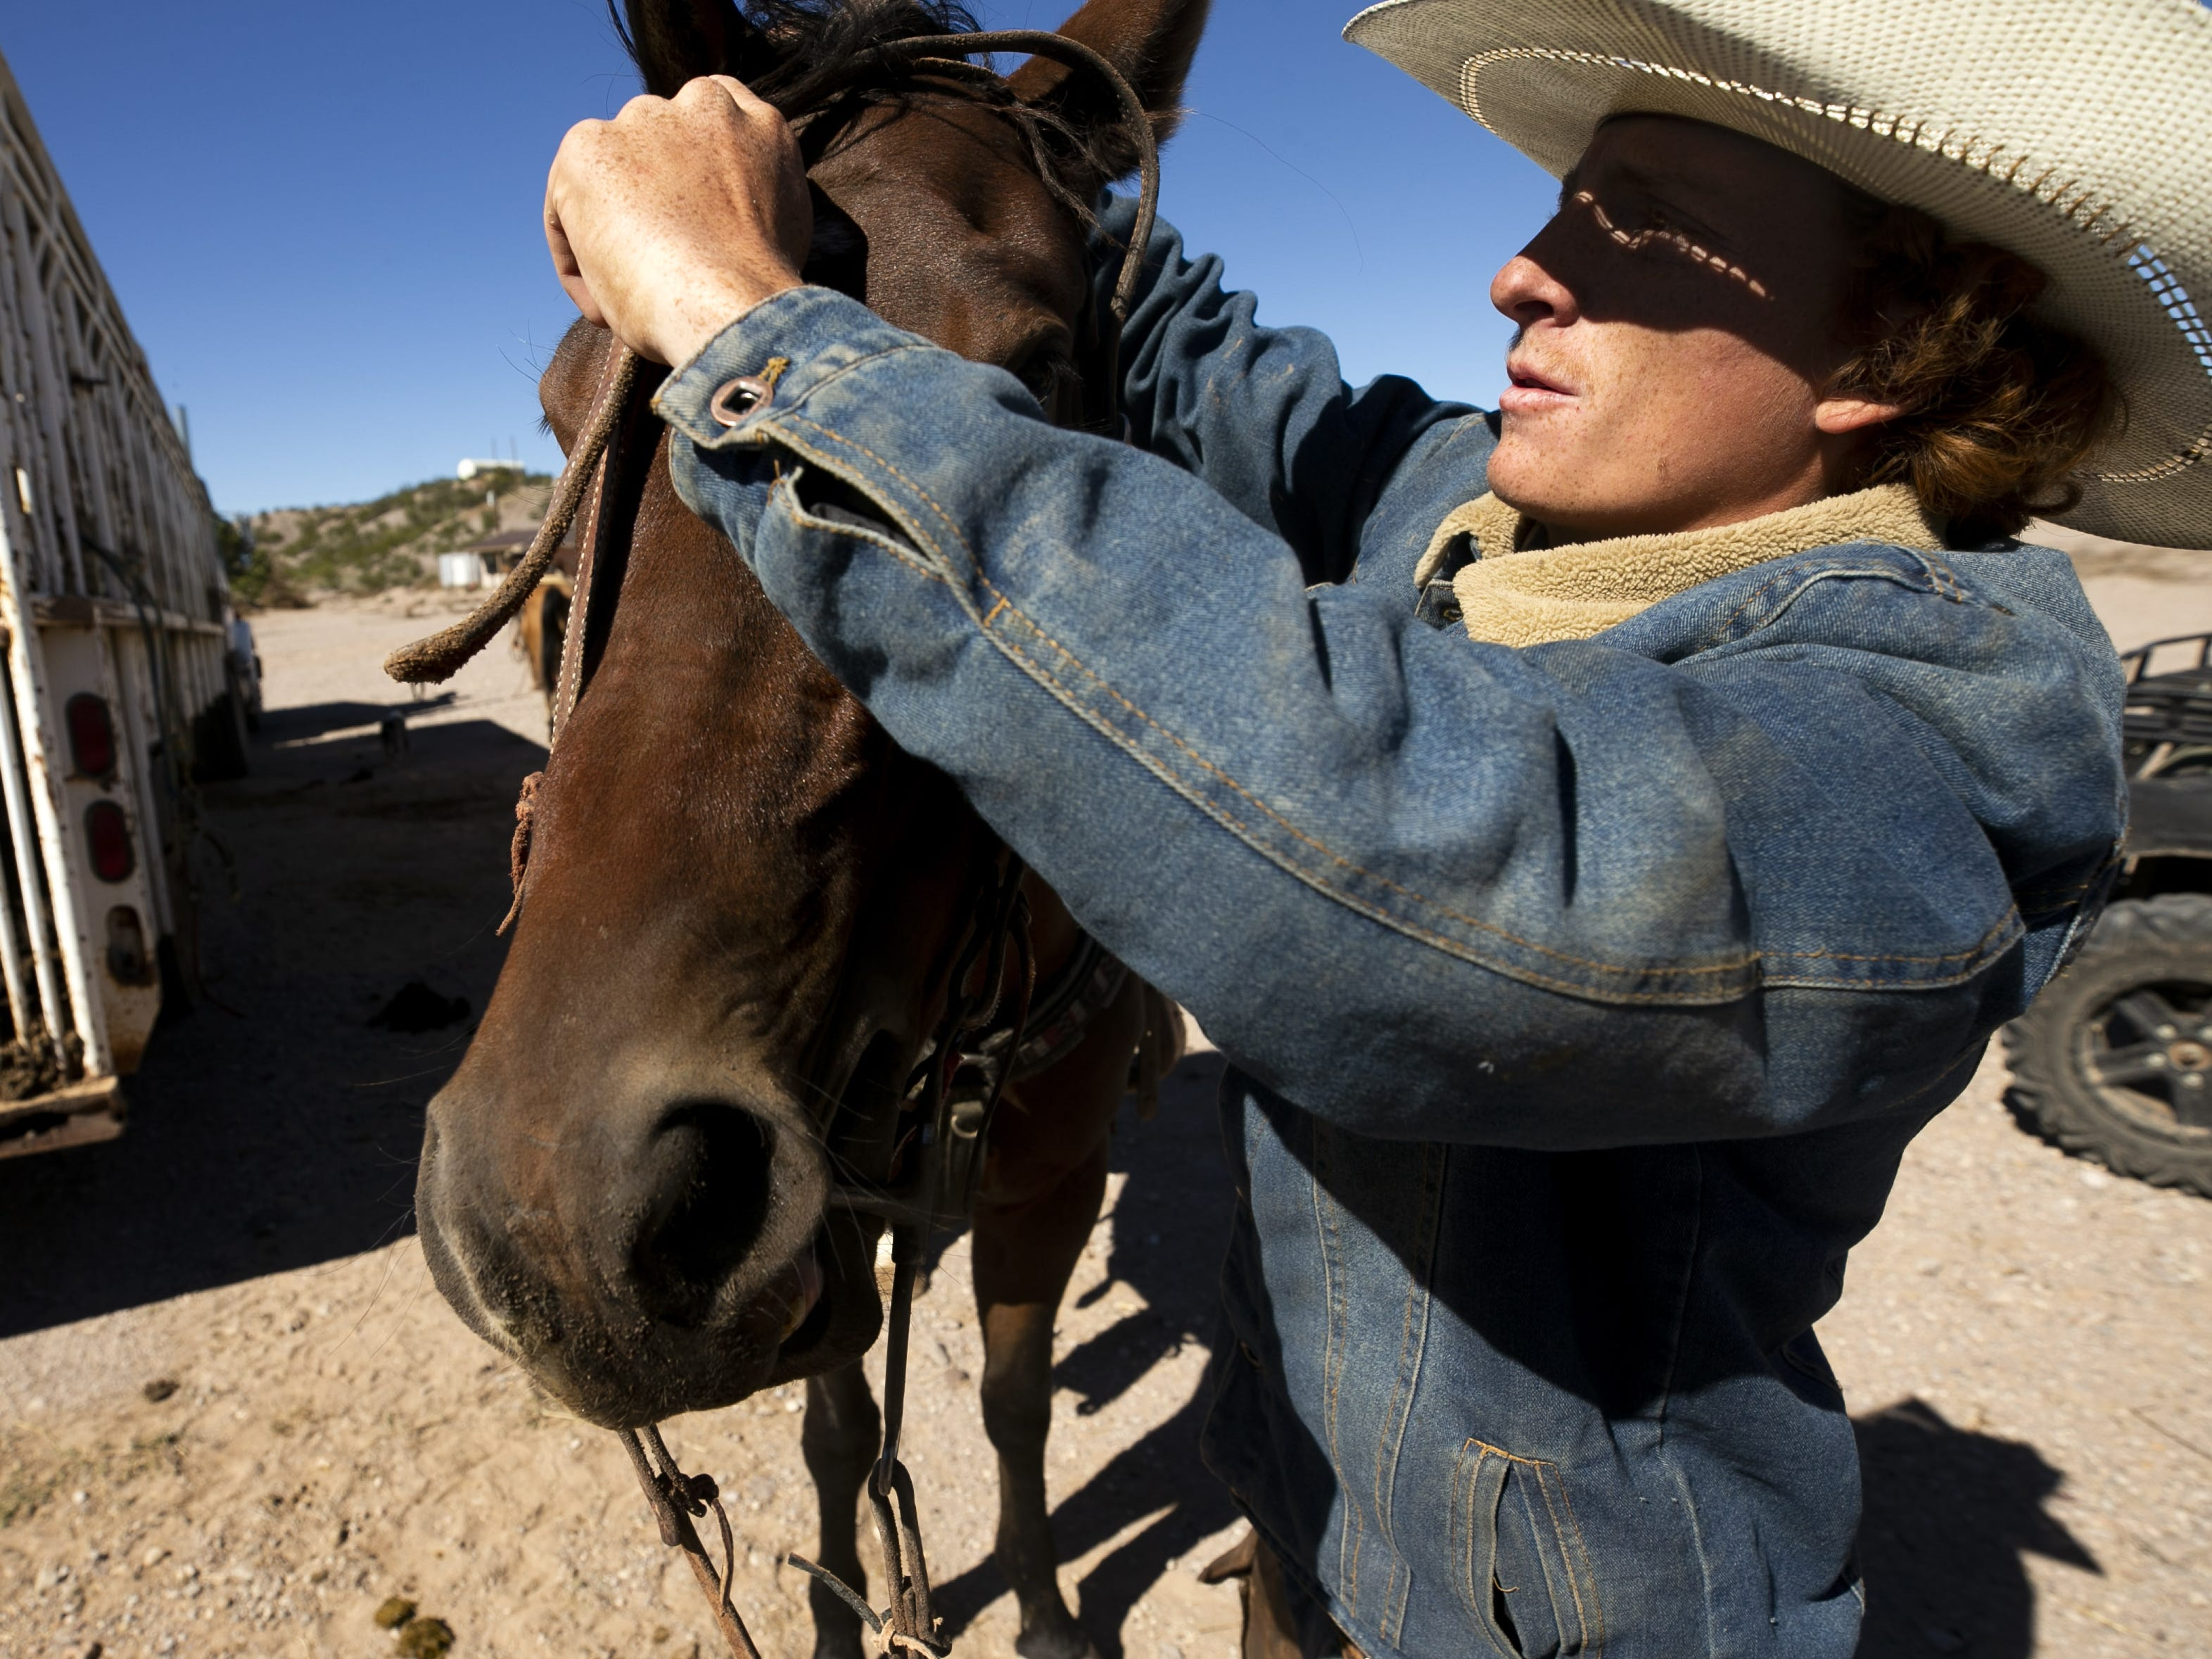 Cowboy Payson Harsh, 18, gets his horse ready before a roundup of cattle at the Lazy B Ranch outside of Duncan, Ariz., on Nov. 2, 2018. Former Supreme Court Justice Sandra Day O'Connor grew up on the ranch.